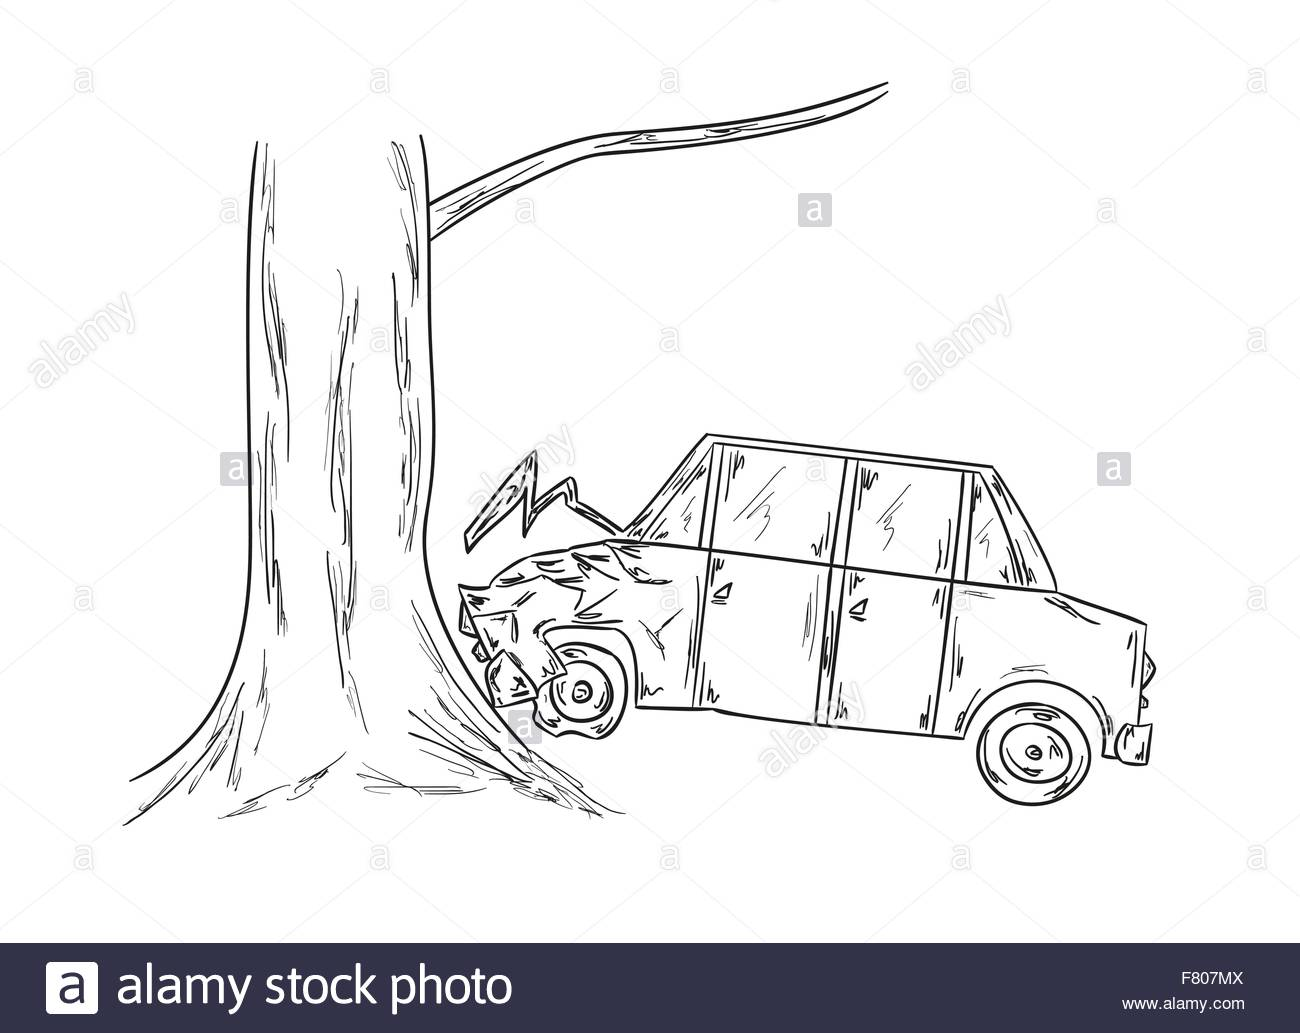 Car Accident Drawing At Getdrawings Com Free For Personal Use Car